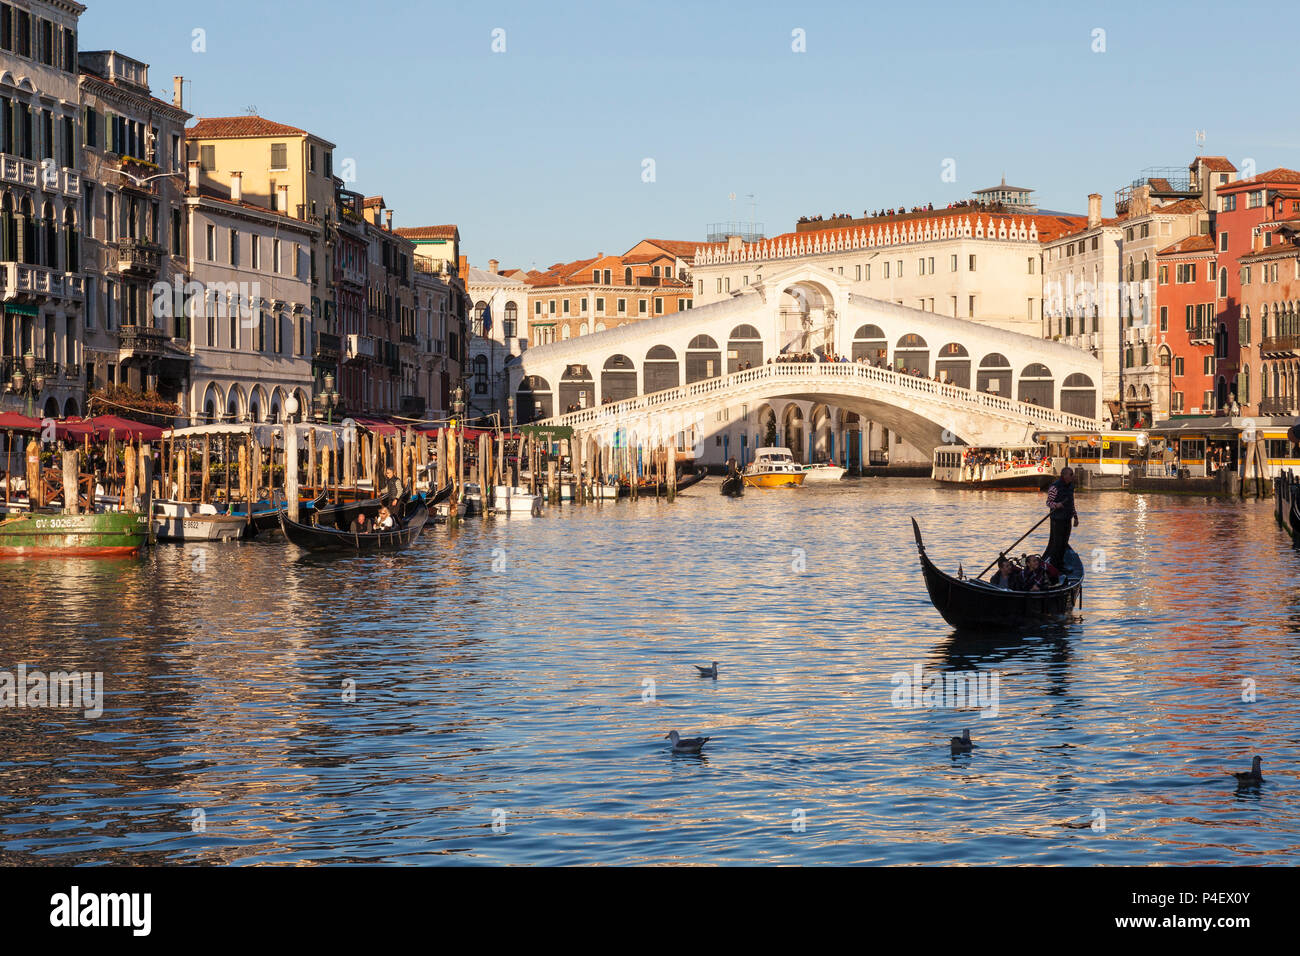 Rialto Bridge at sunset with gondolas and boat traffic, Grand Canal, Venice,  Veneto Italy . Golden hour , seagulls bobbing on water - Stock Image